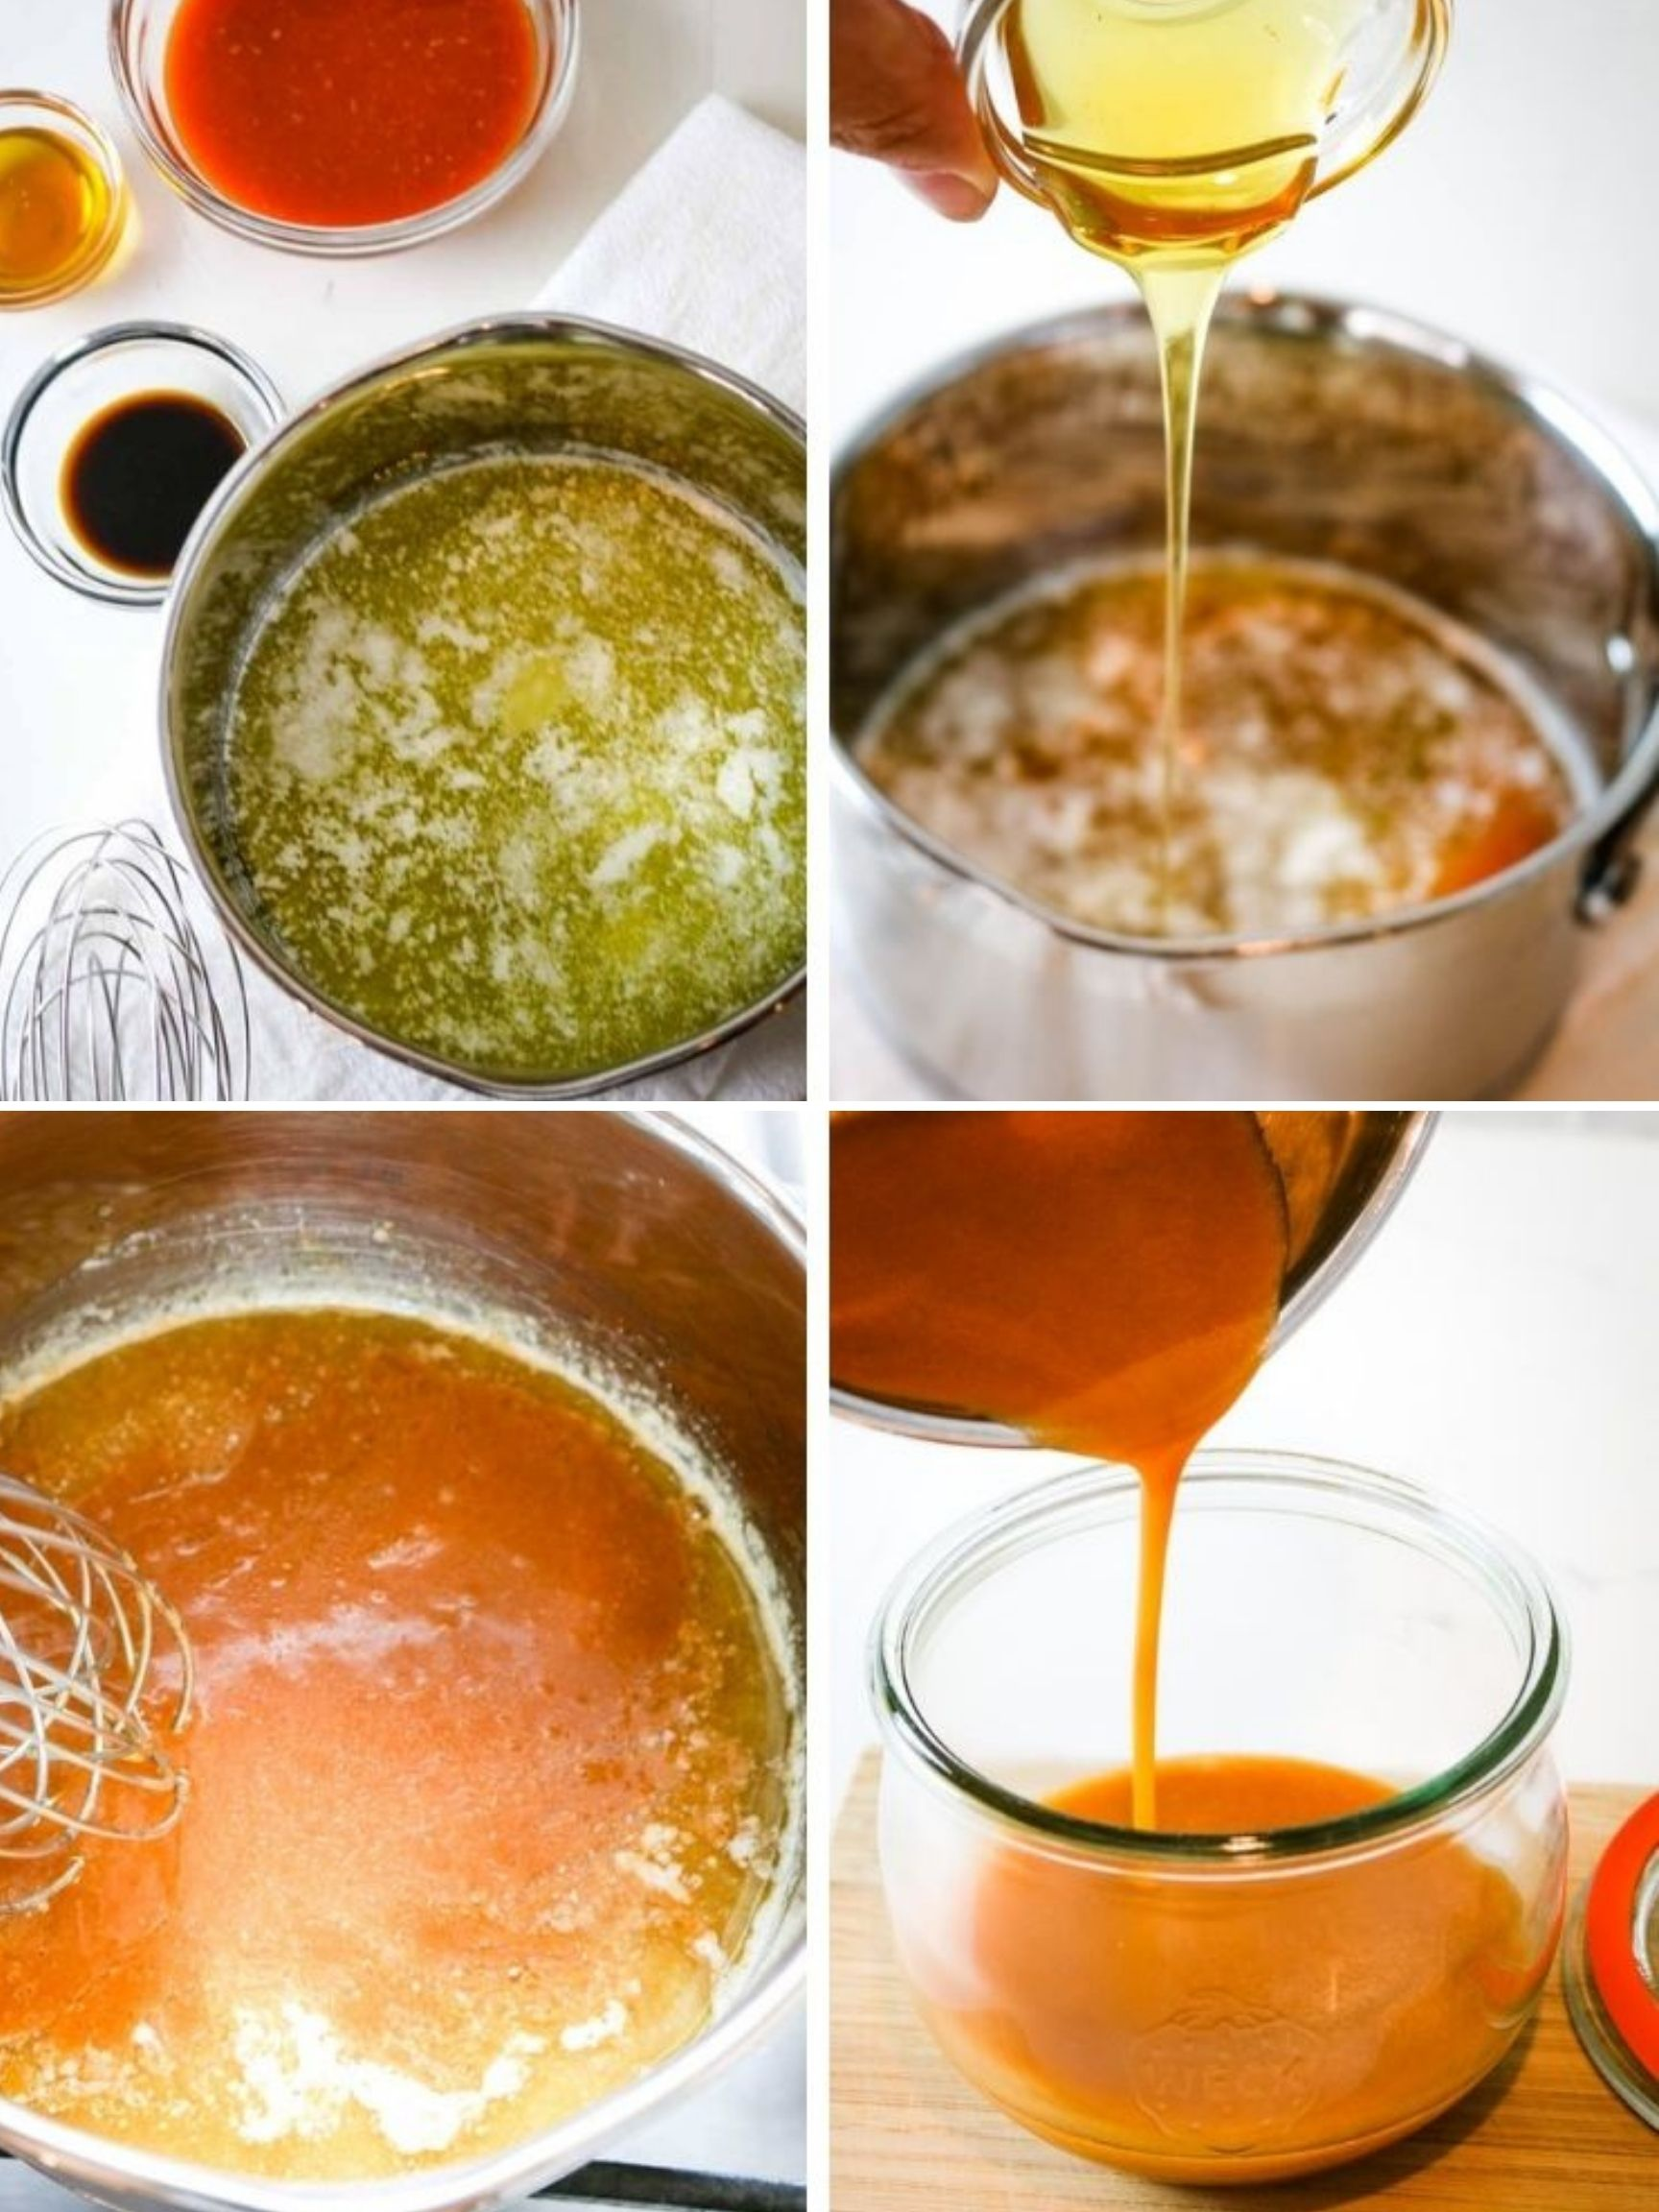 How to Make Homemade Buffalo Wing Sauce from Scratch in 3 easy steps